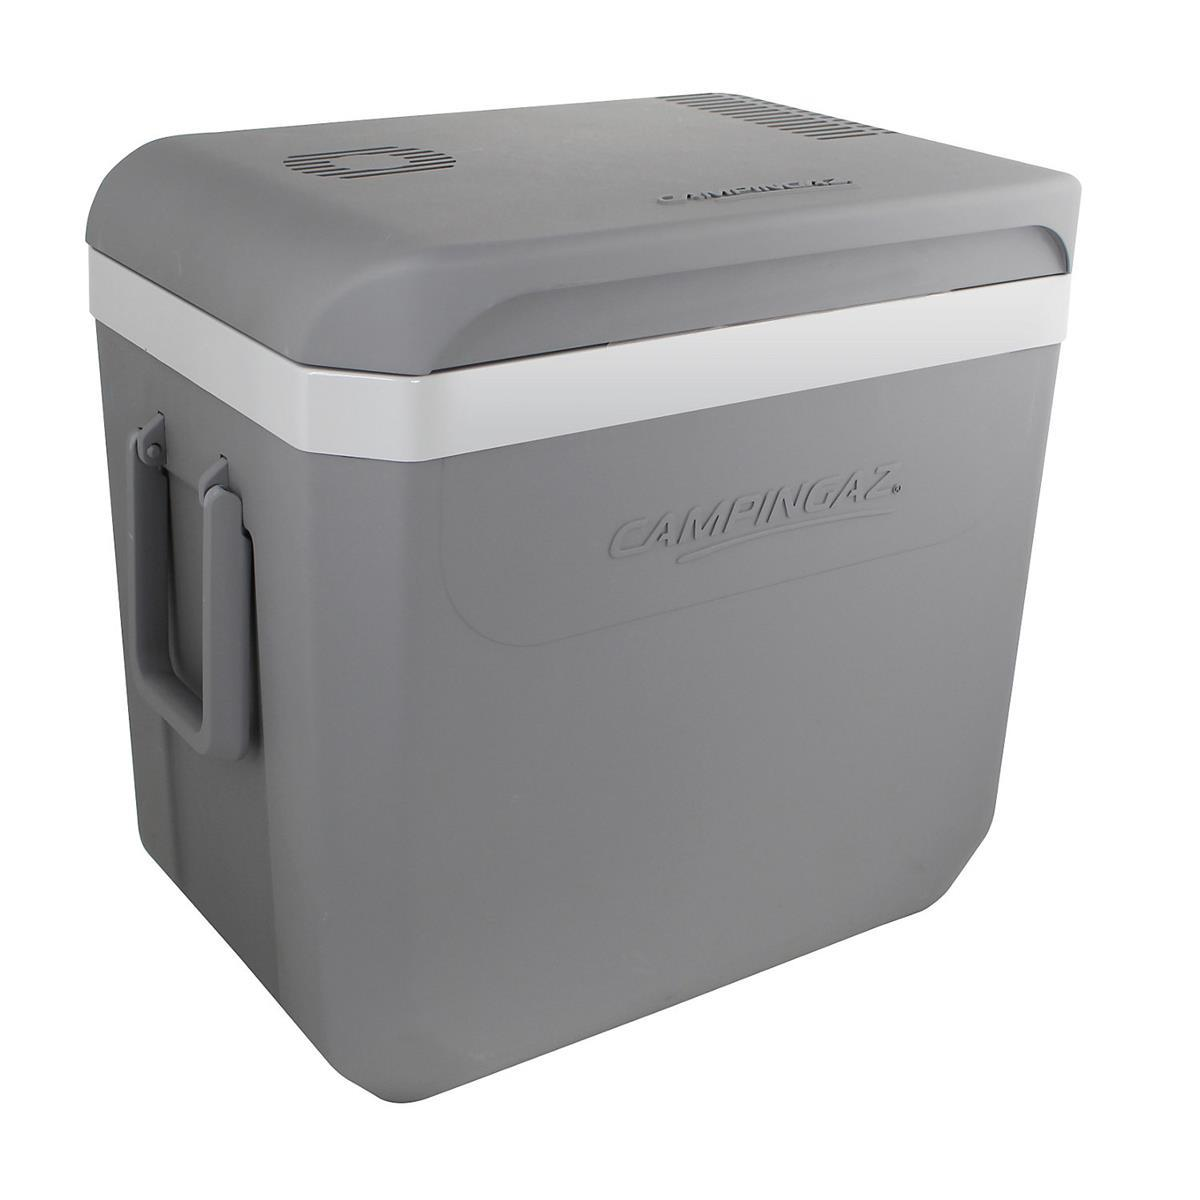 Campingaz Powerbox Plus 36 L